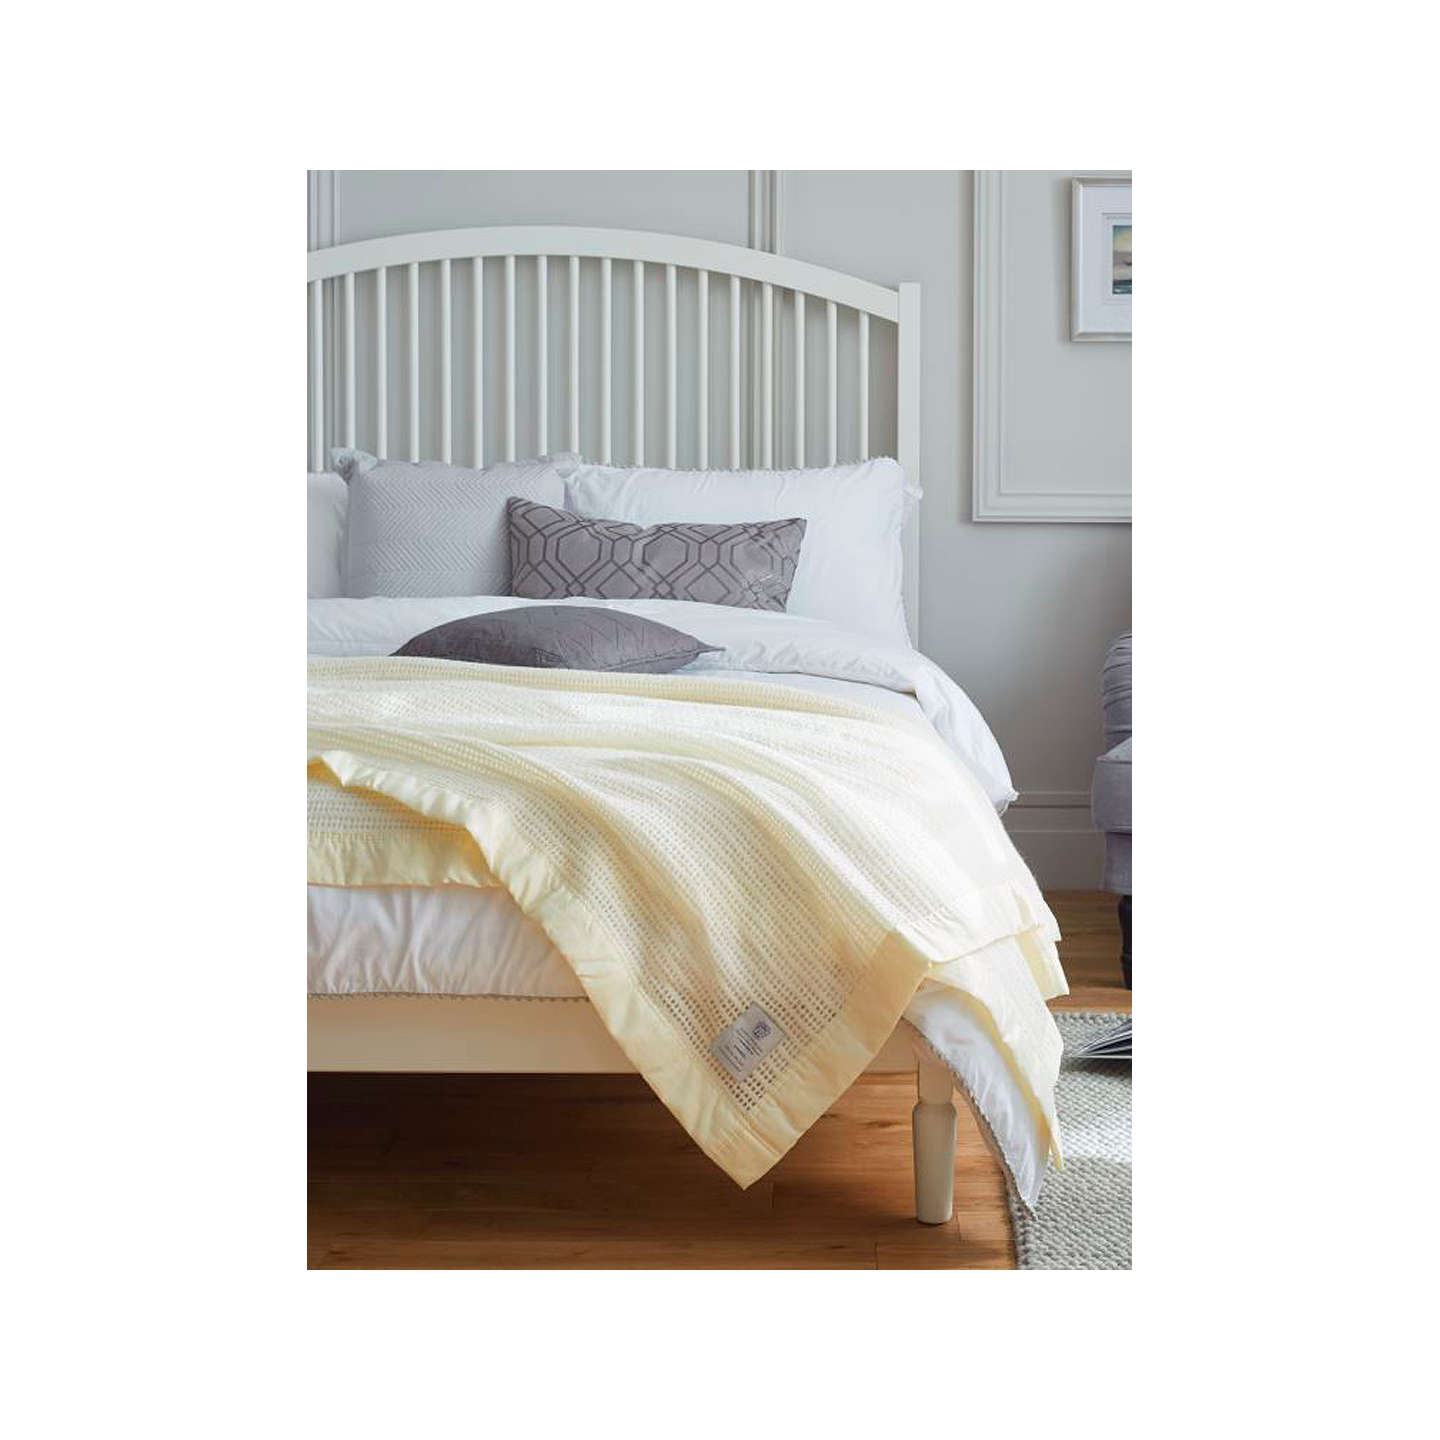 BuyJohn Atkinson by Hainsworth Monarch Pure Wool Blanket, Cream, Double Online at johnlewis.com